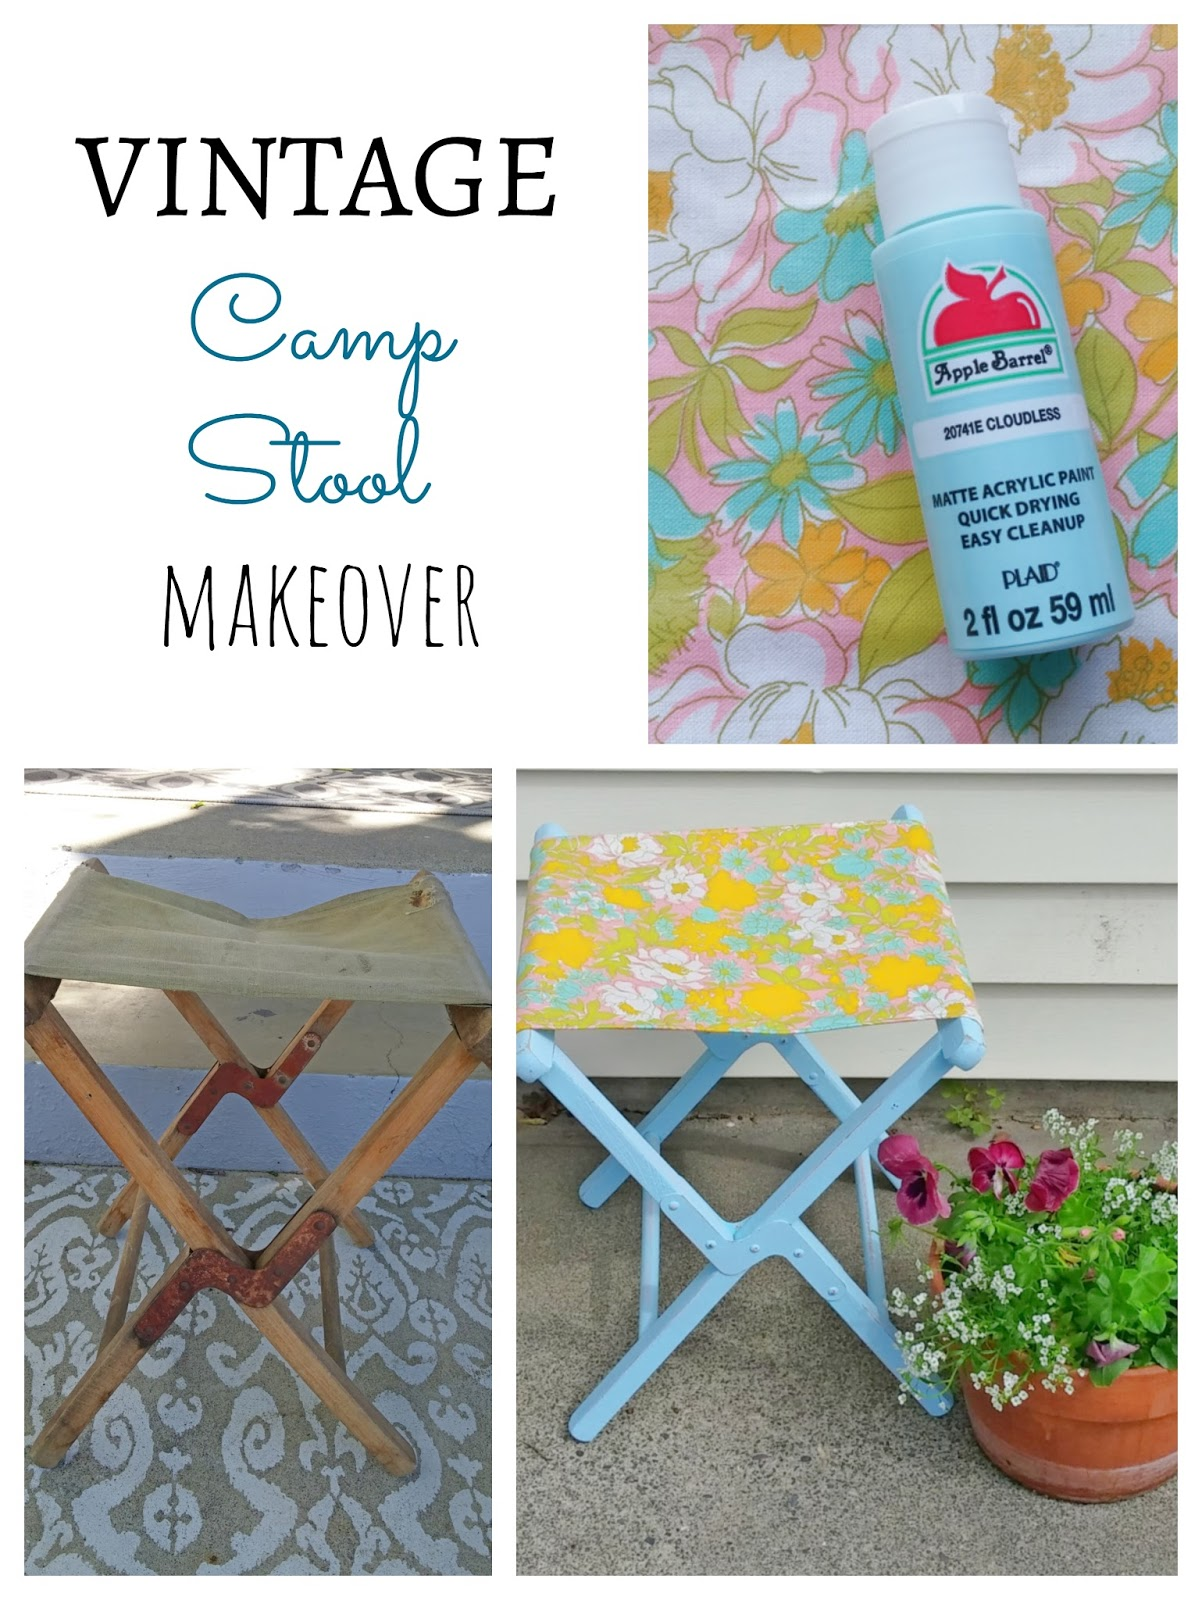 How to makeover a vintage camp stool